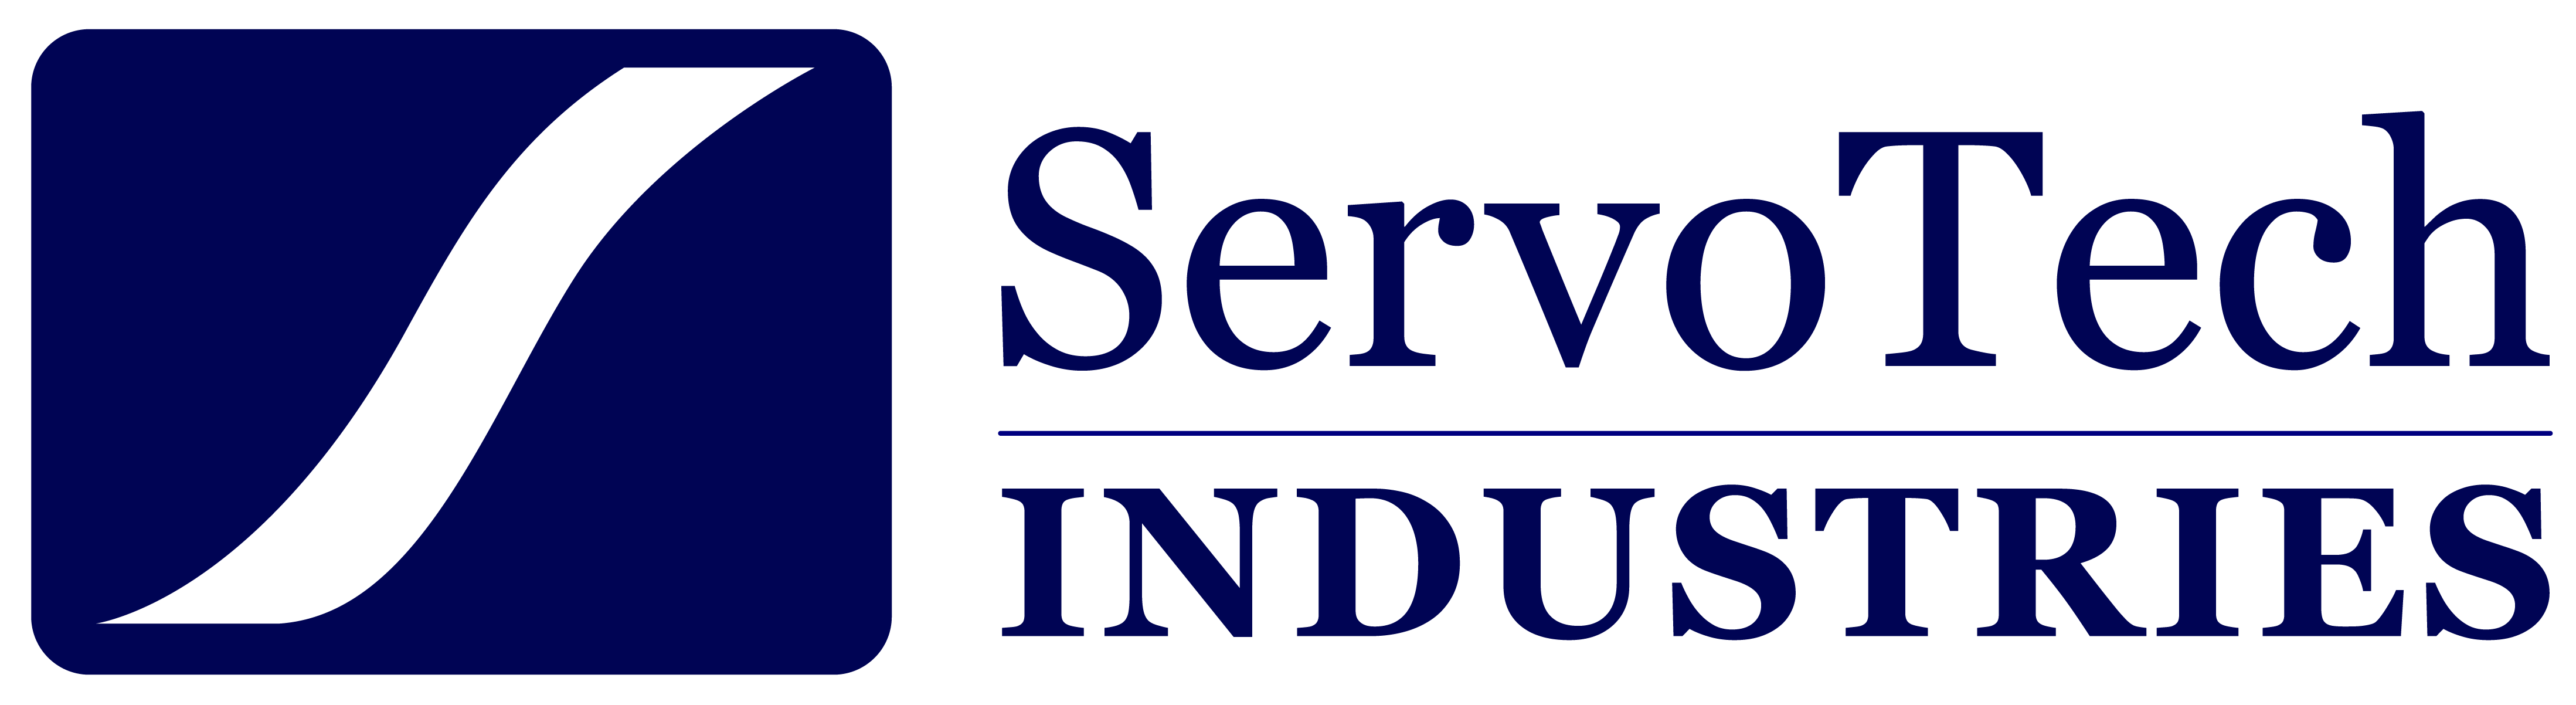 Servotech Industries